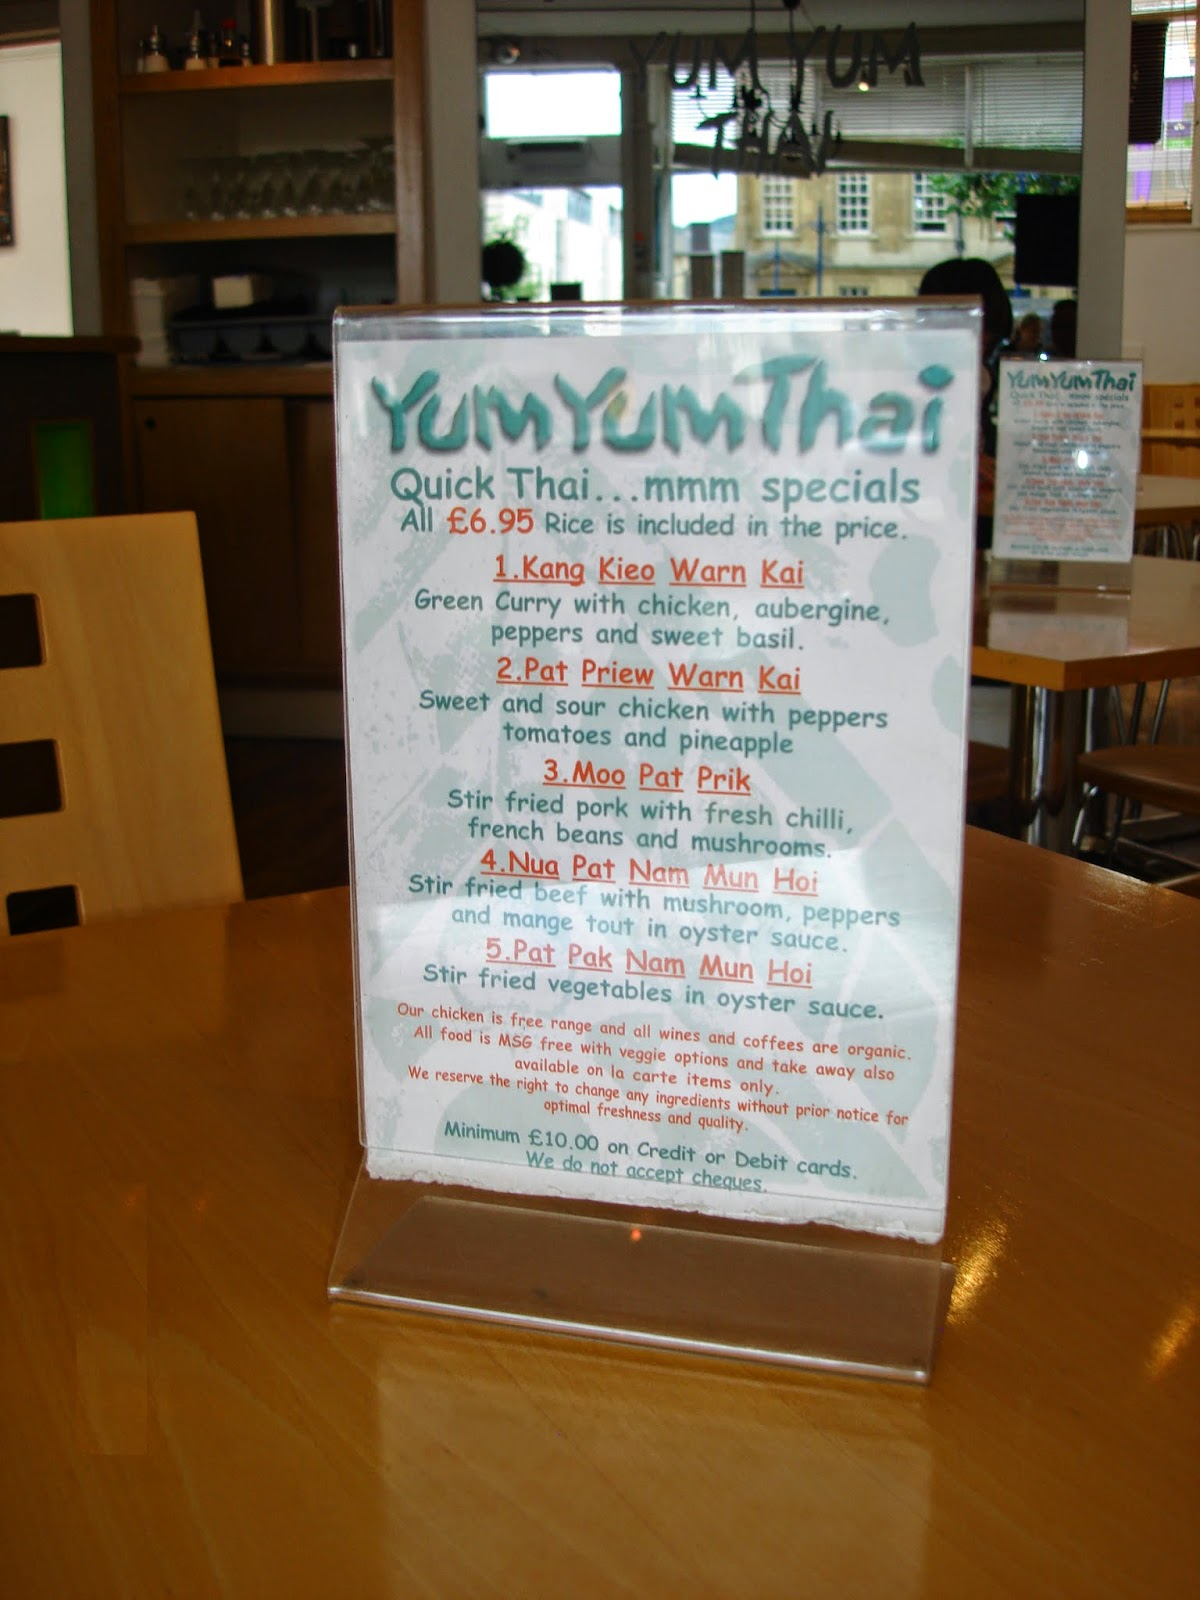 yum yum thai restaurant, lunch menu, Bath